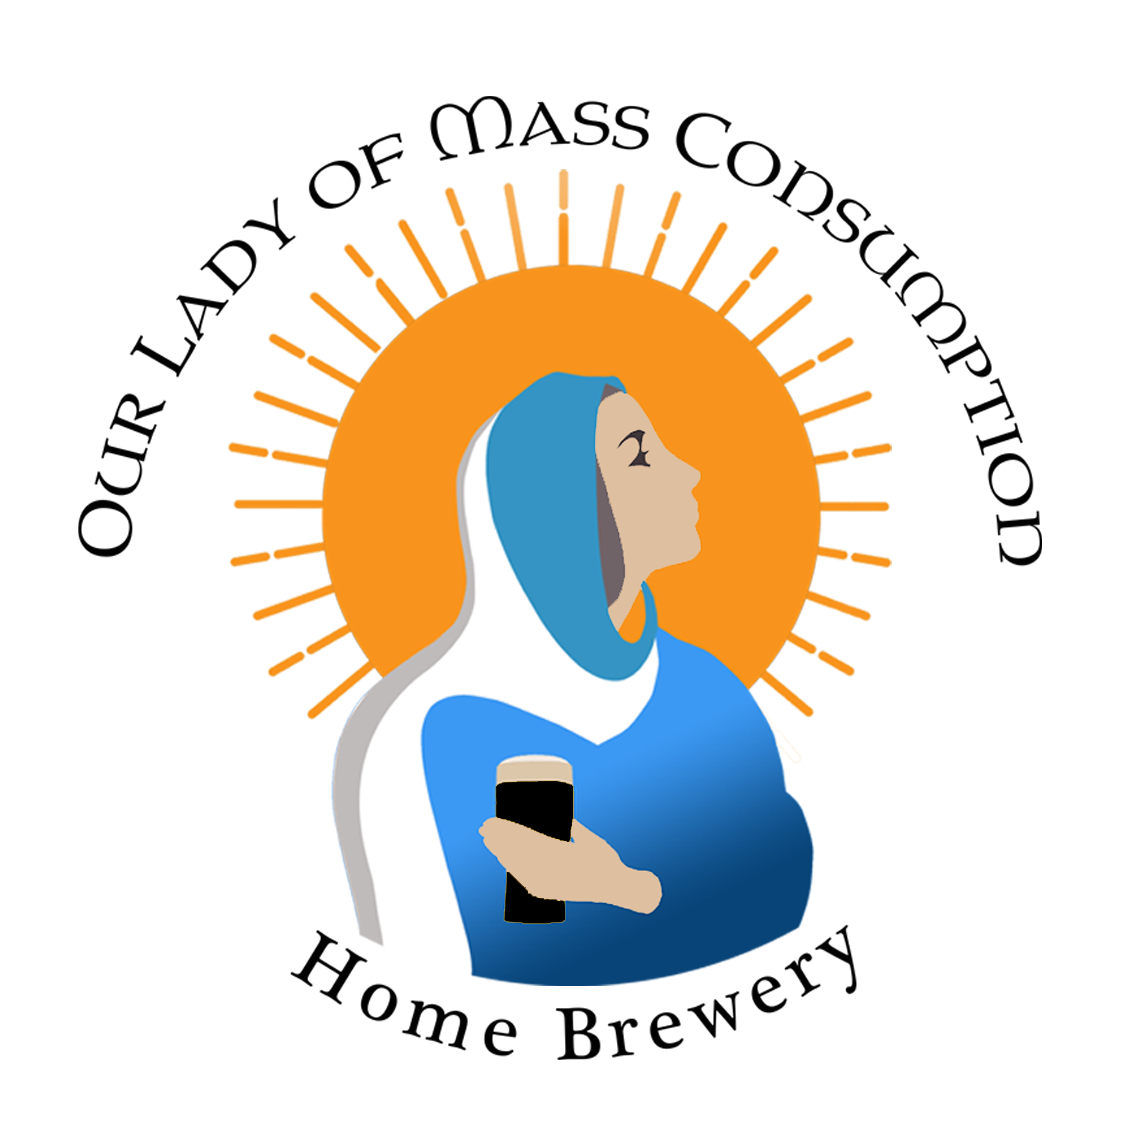 Our Lady of Mass Consumption Home Brewery